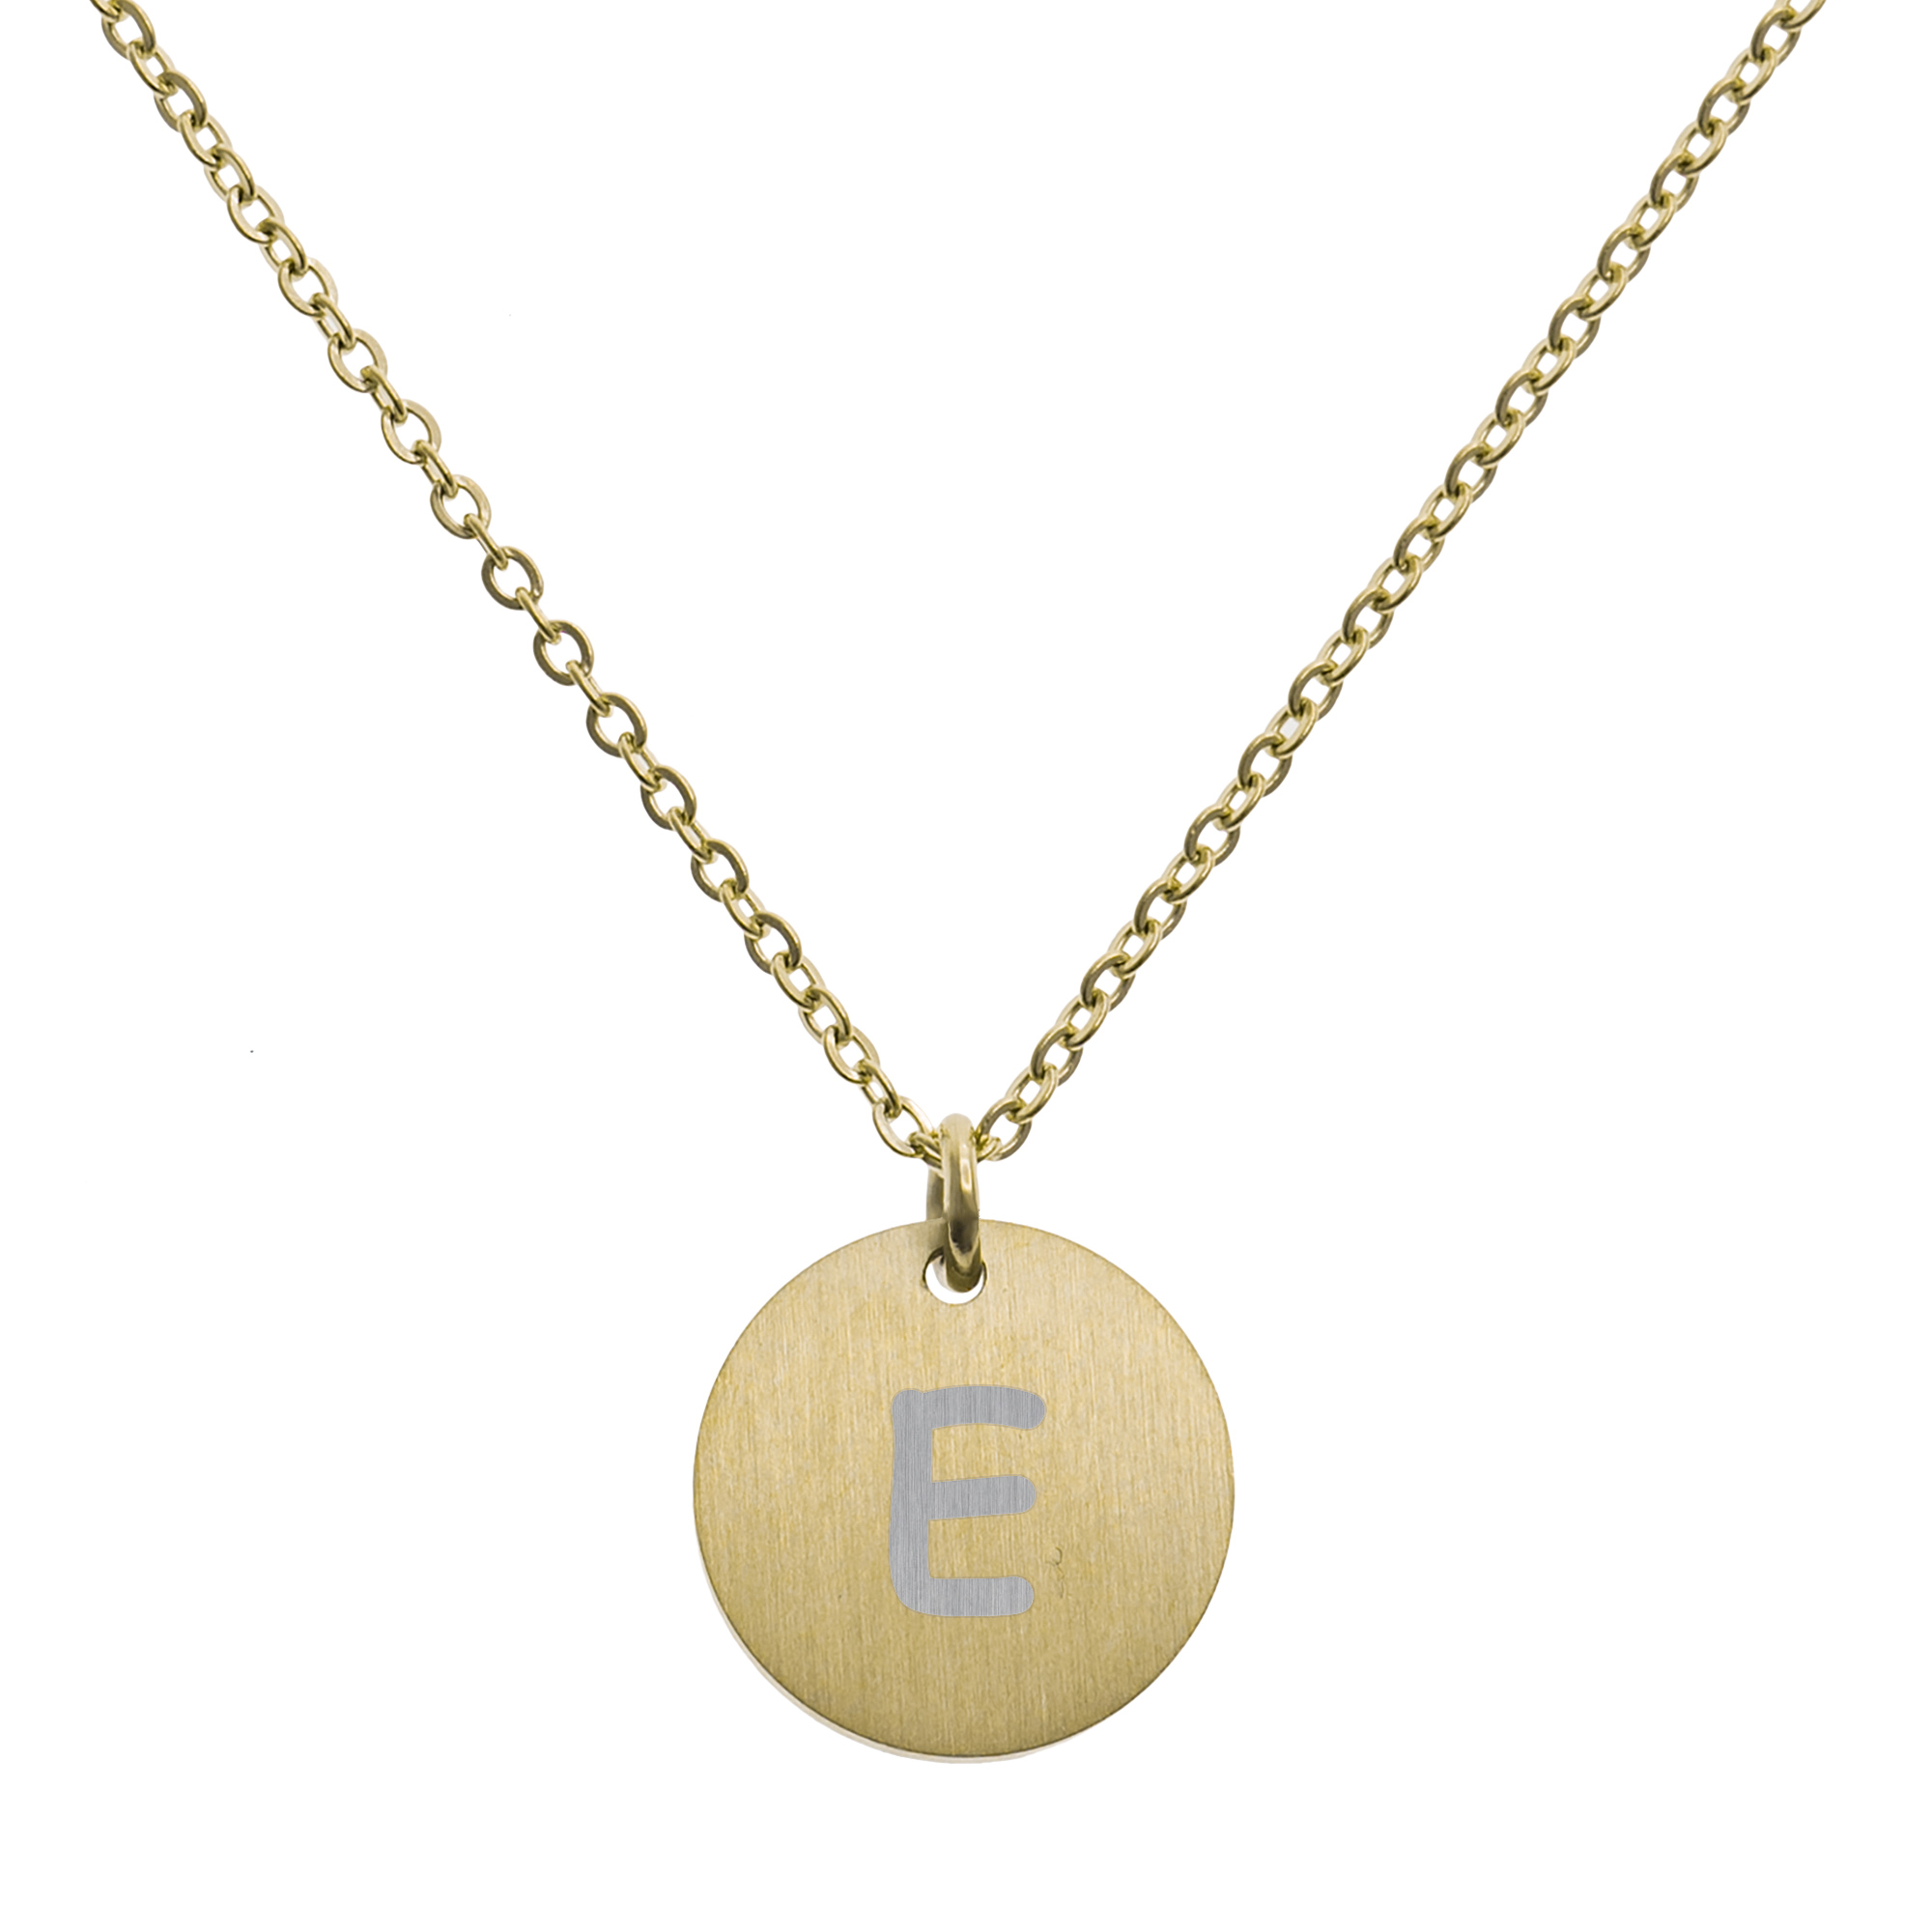 Engraved Metal Initial Letter Disc Pendant Chain Necklace 18.5 in + 2.5 in - E - Gold Tone